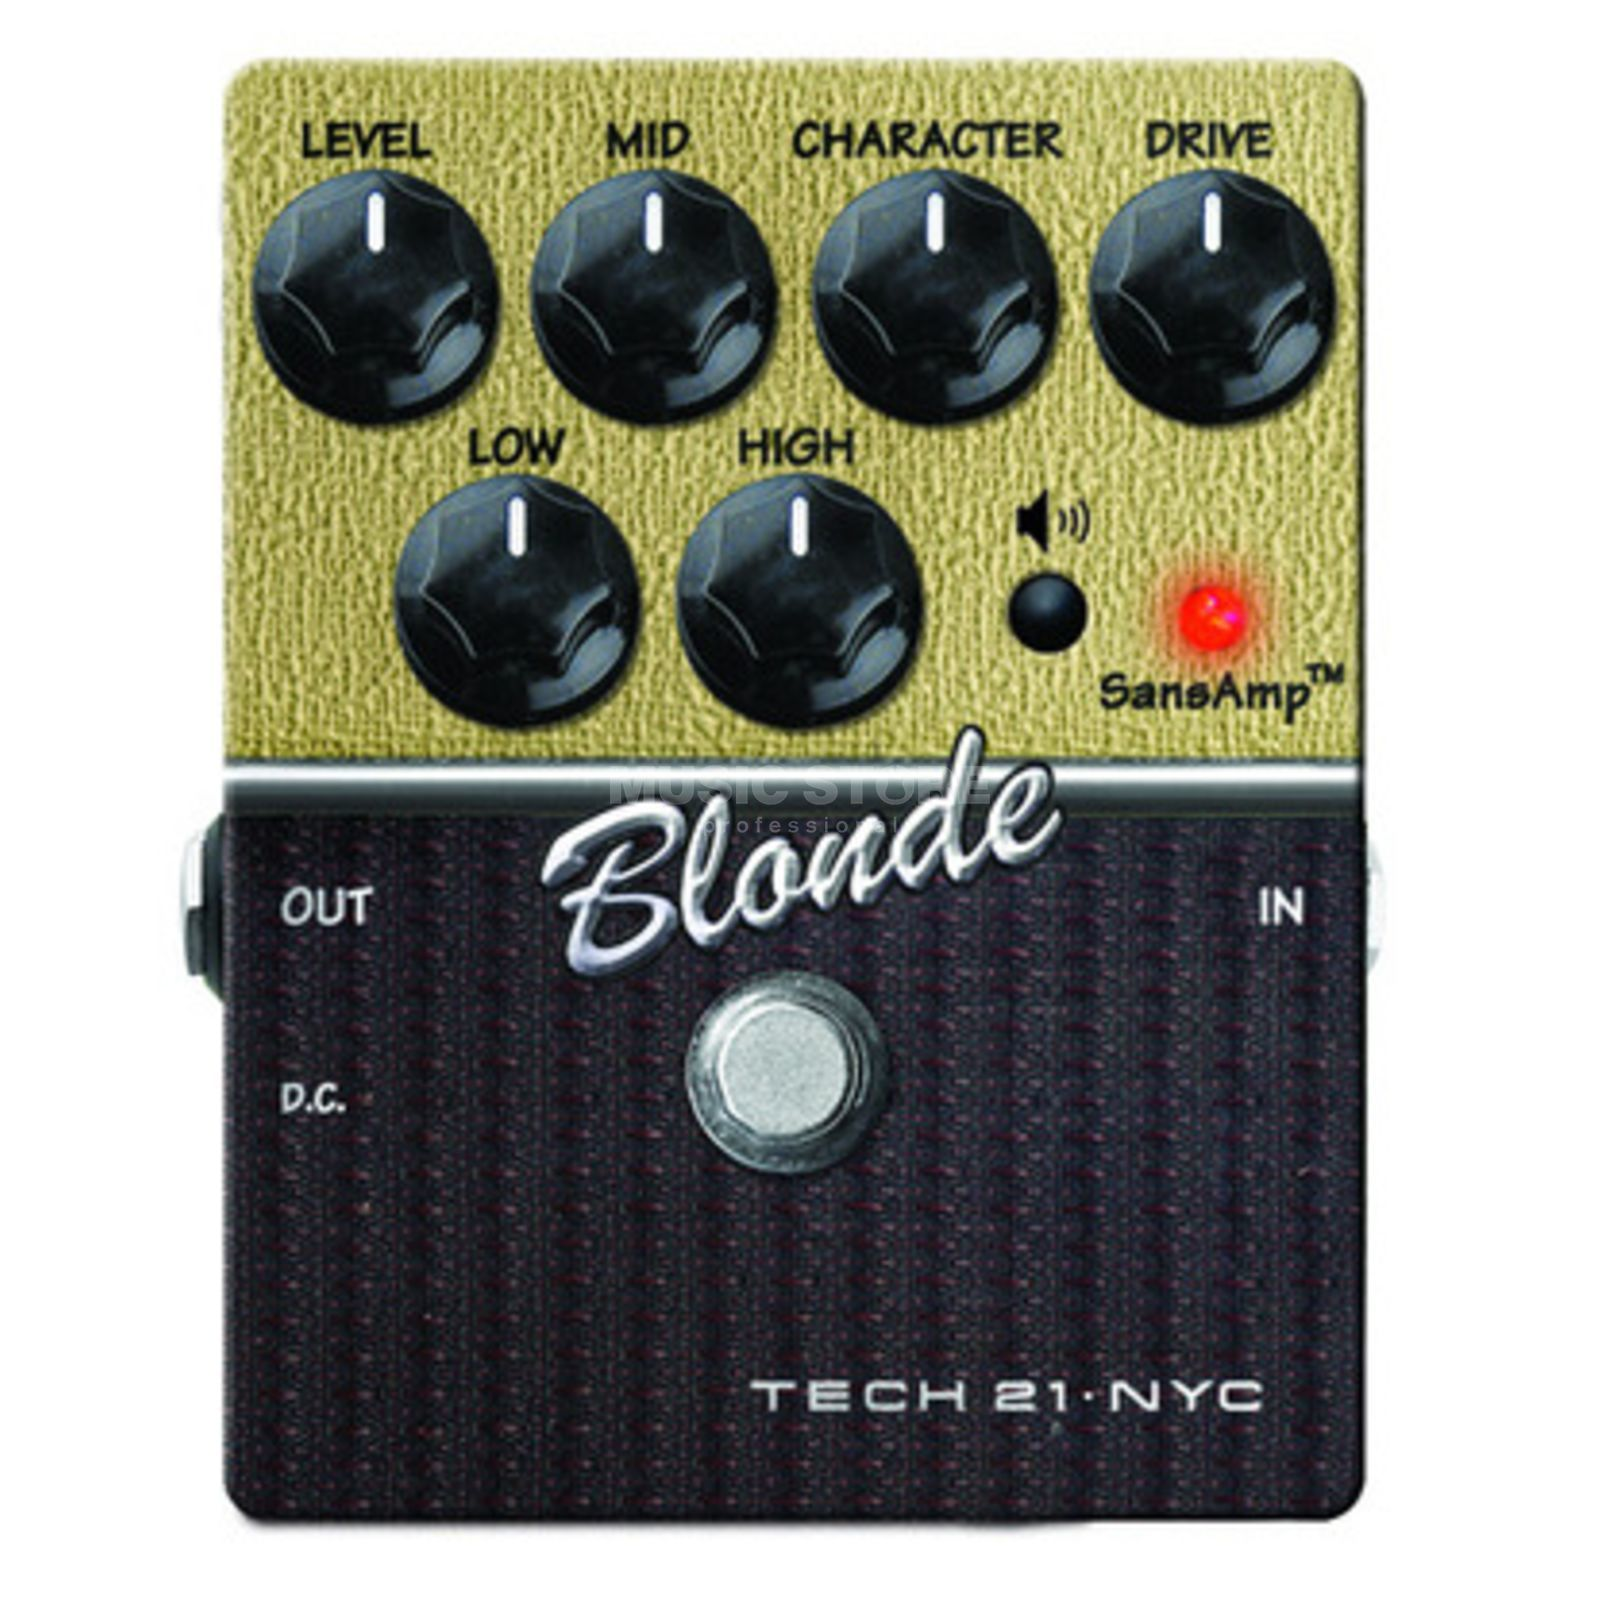 Tech 21 SansAmp Blonde Guitar Amp Mode ler Pedal   Produktbillede